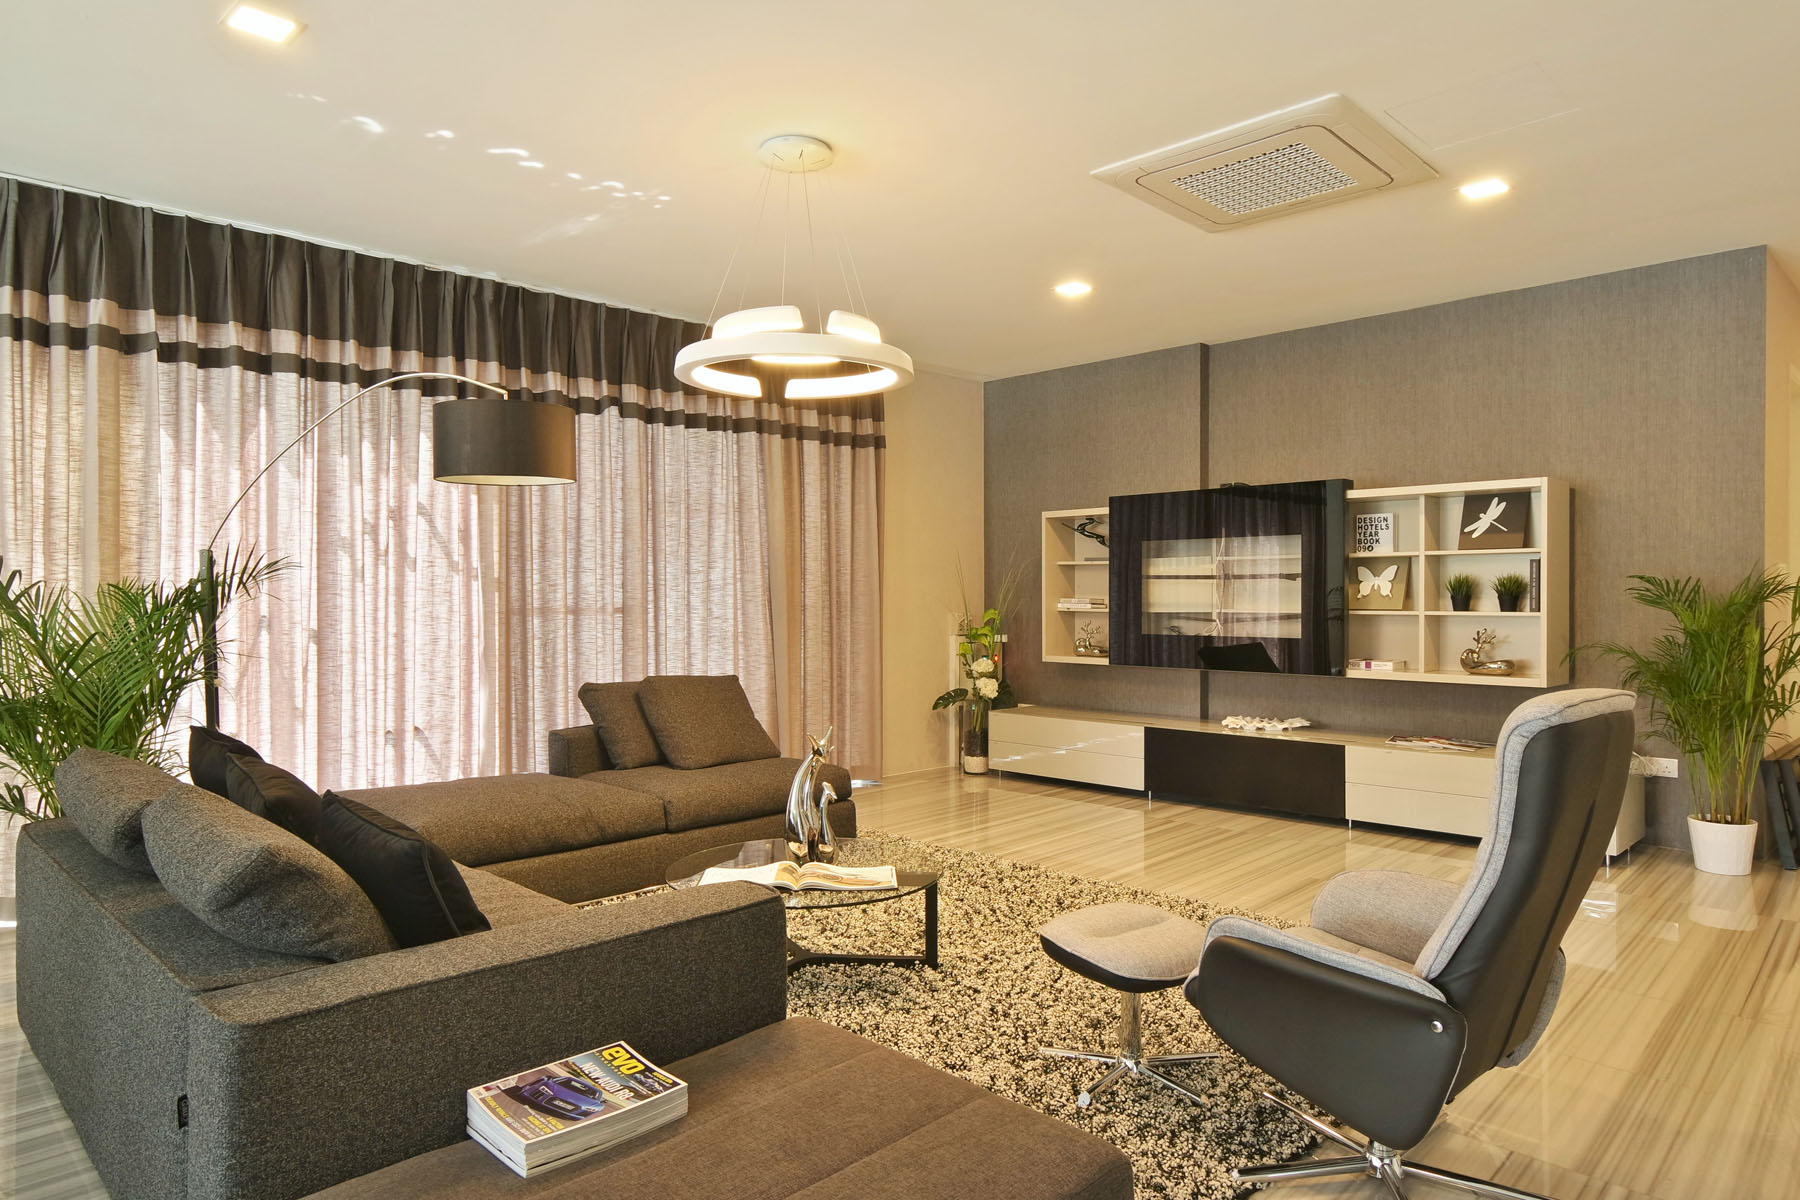 Living room decoration and design company singapore for Living room interior design singapore